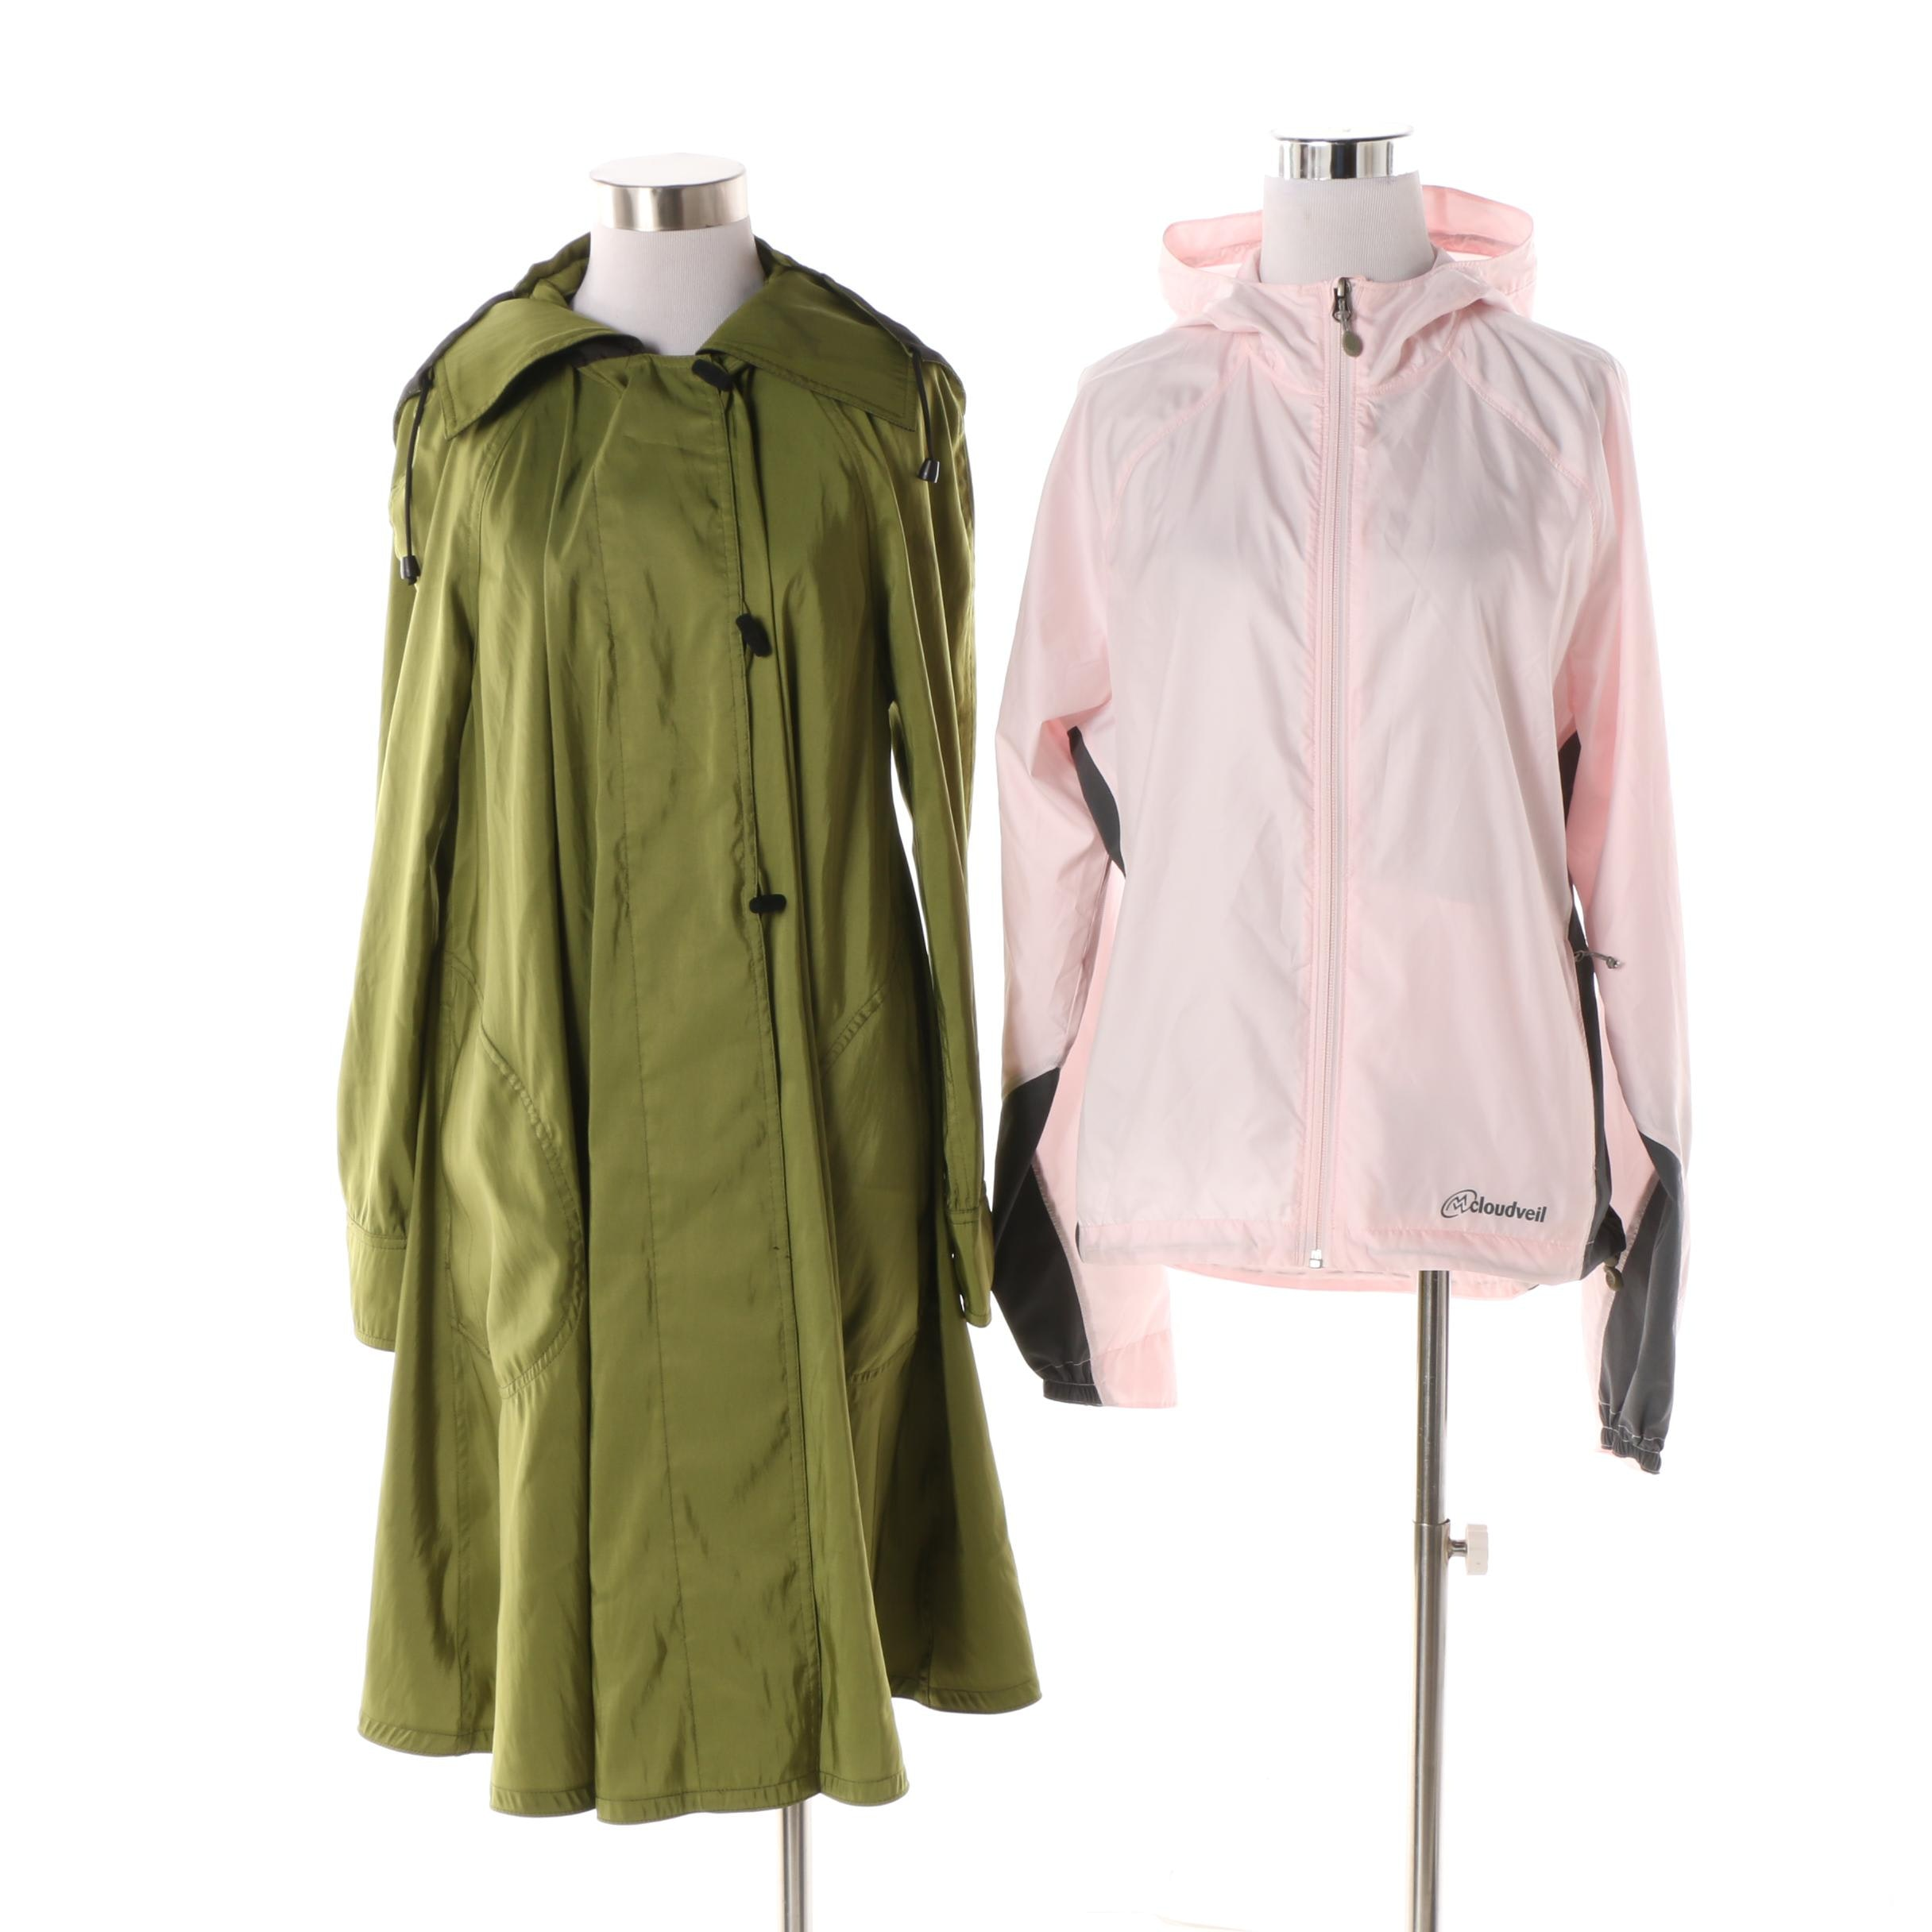 Women's Mycra Pac Green Raincoat and Cloudveil Pink Windbreaker